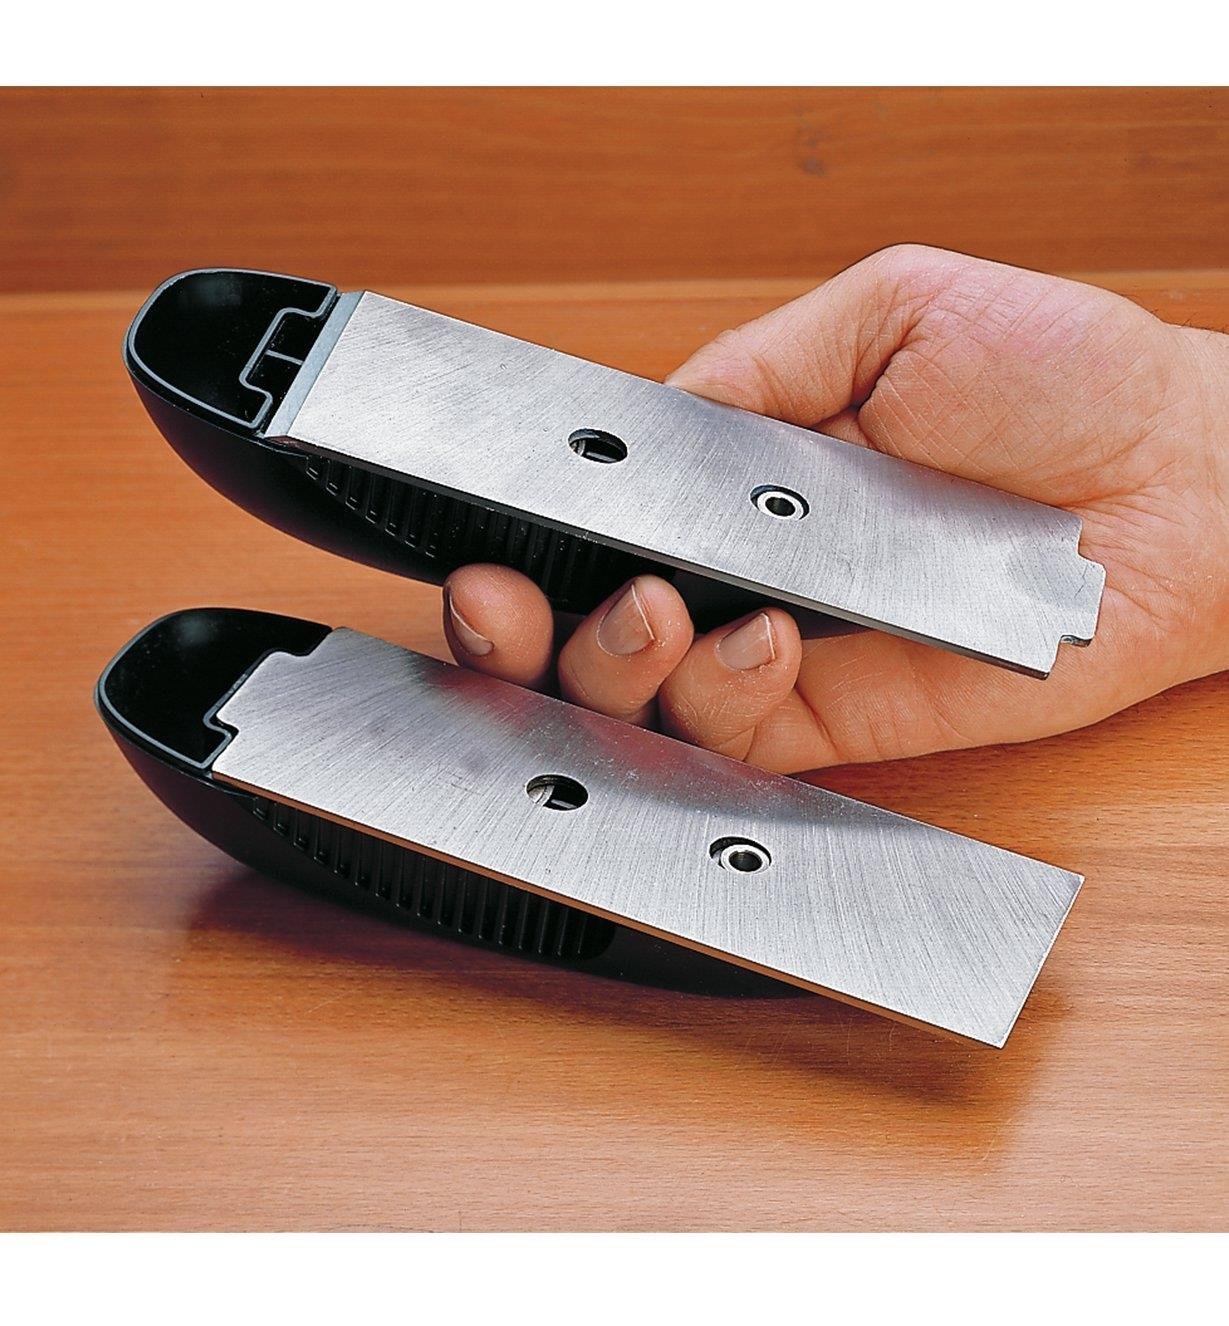 Two Veritas flush planes, one showing the plane blade installed for use, the other showing the blade reversed for storage.